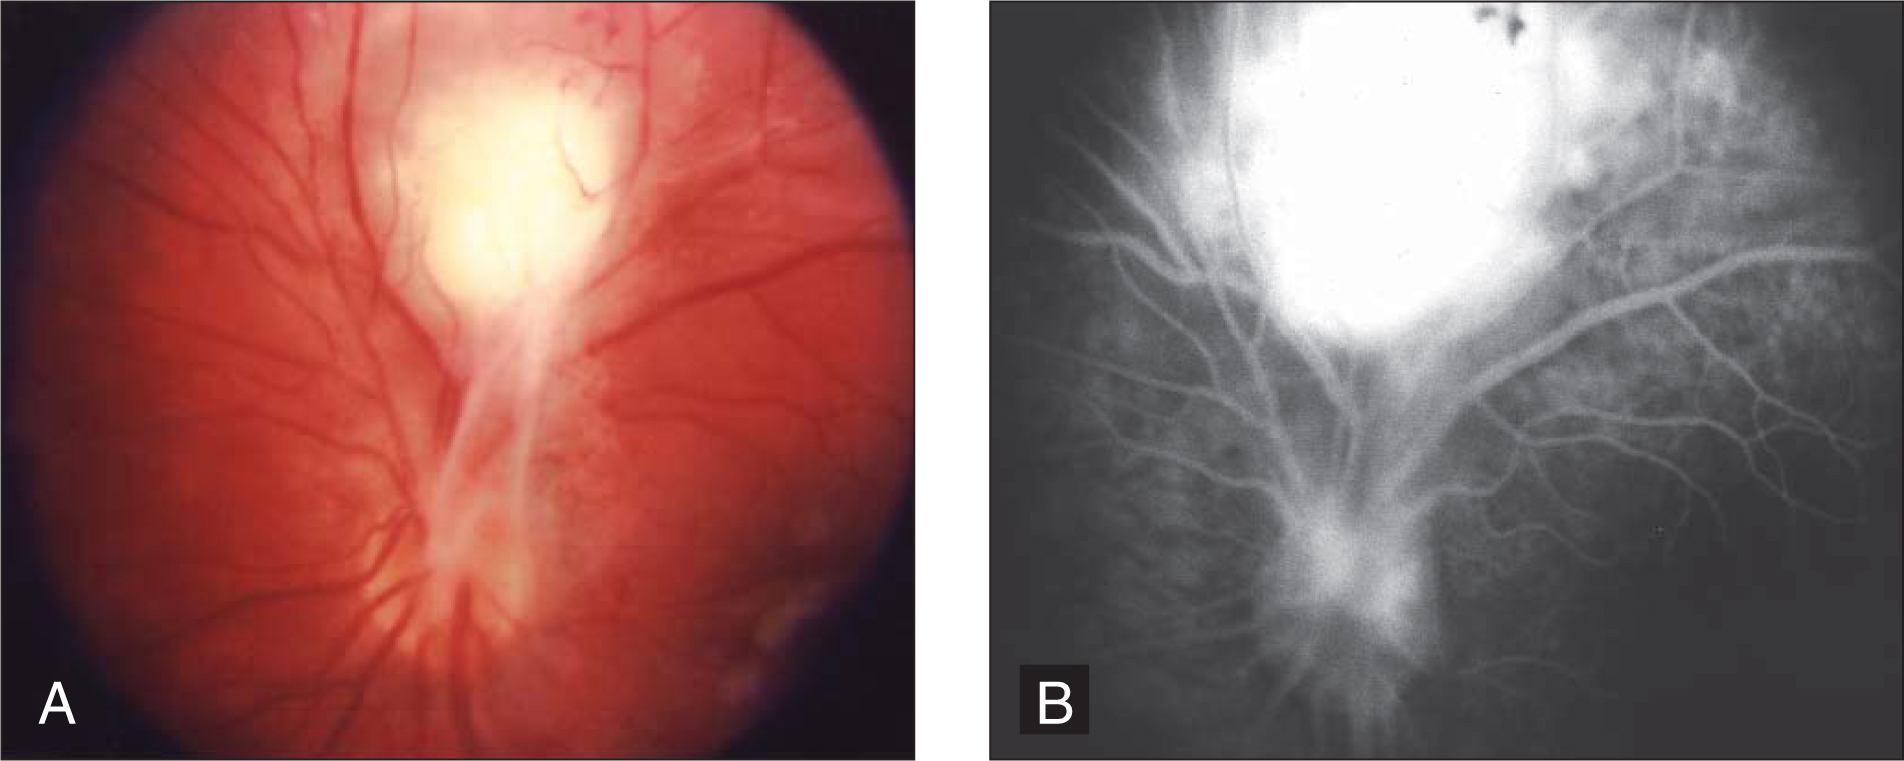 Posterior pole granuloma superior to the optic disc with secondary fibrocellular membranes extending into the optic nerve, vitreous, and surrounding retina in a 10-year-old boy with Toxocara canis infection. (A) Color photograph. (B) Fluorescein angiogram.